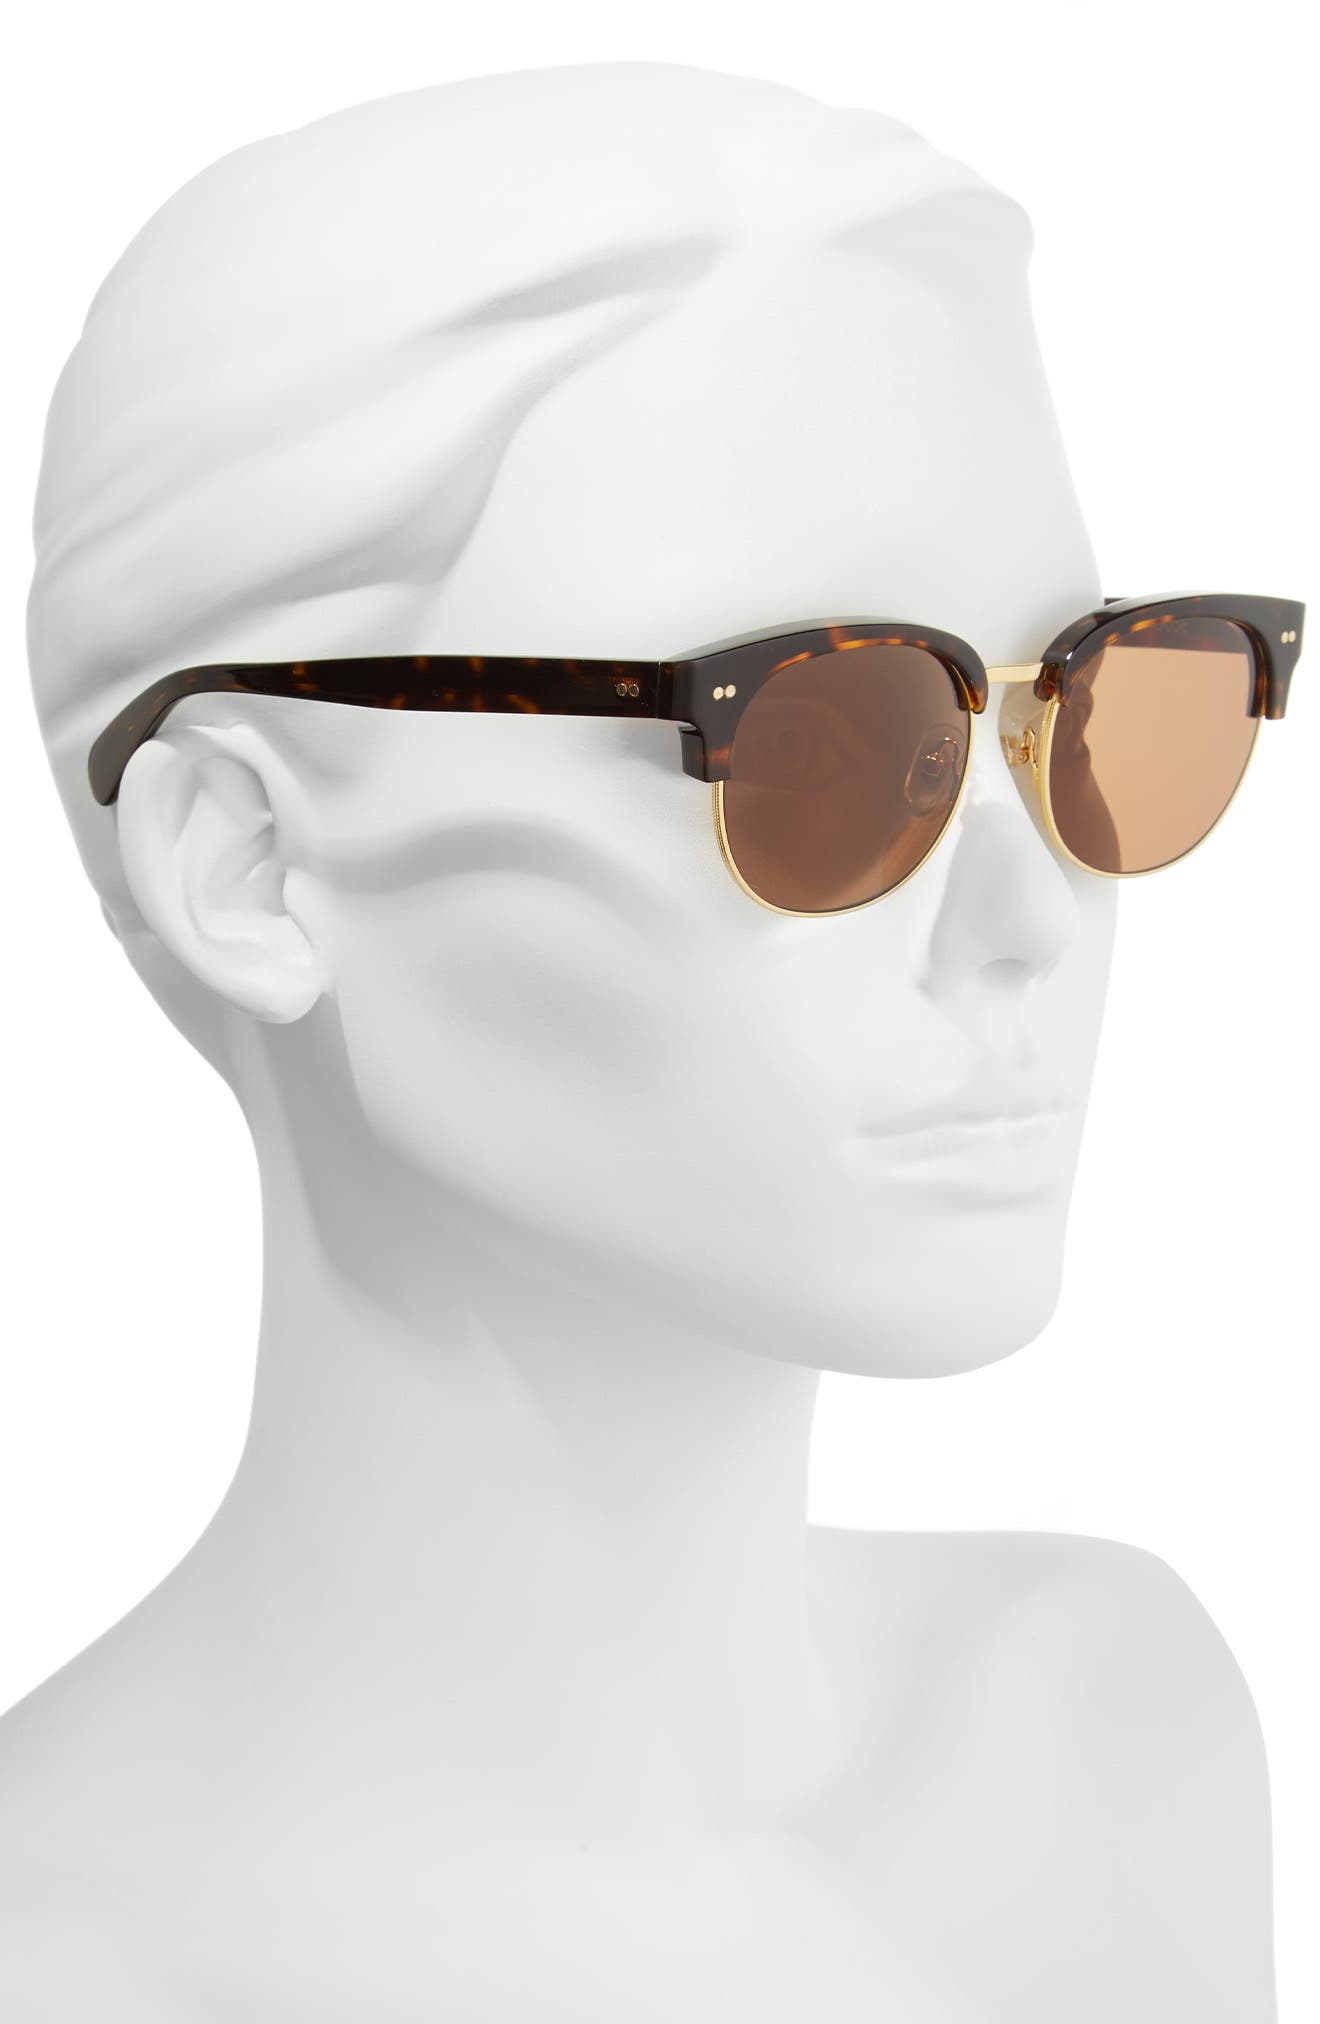 Clubhouse 50mm Semi-Rimless Sunglasses,                             Alternate thumbnail 2, color,                             Tortoise